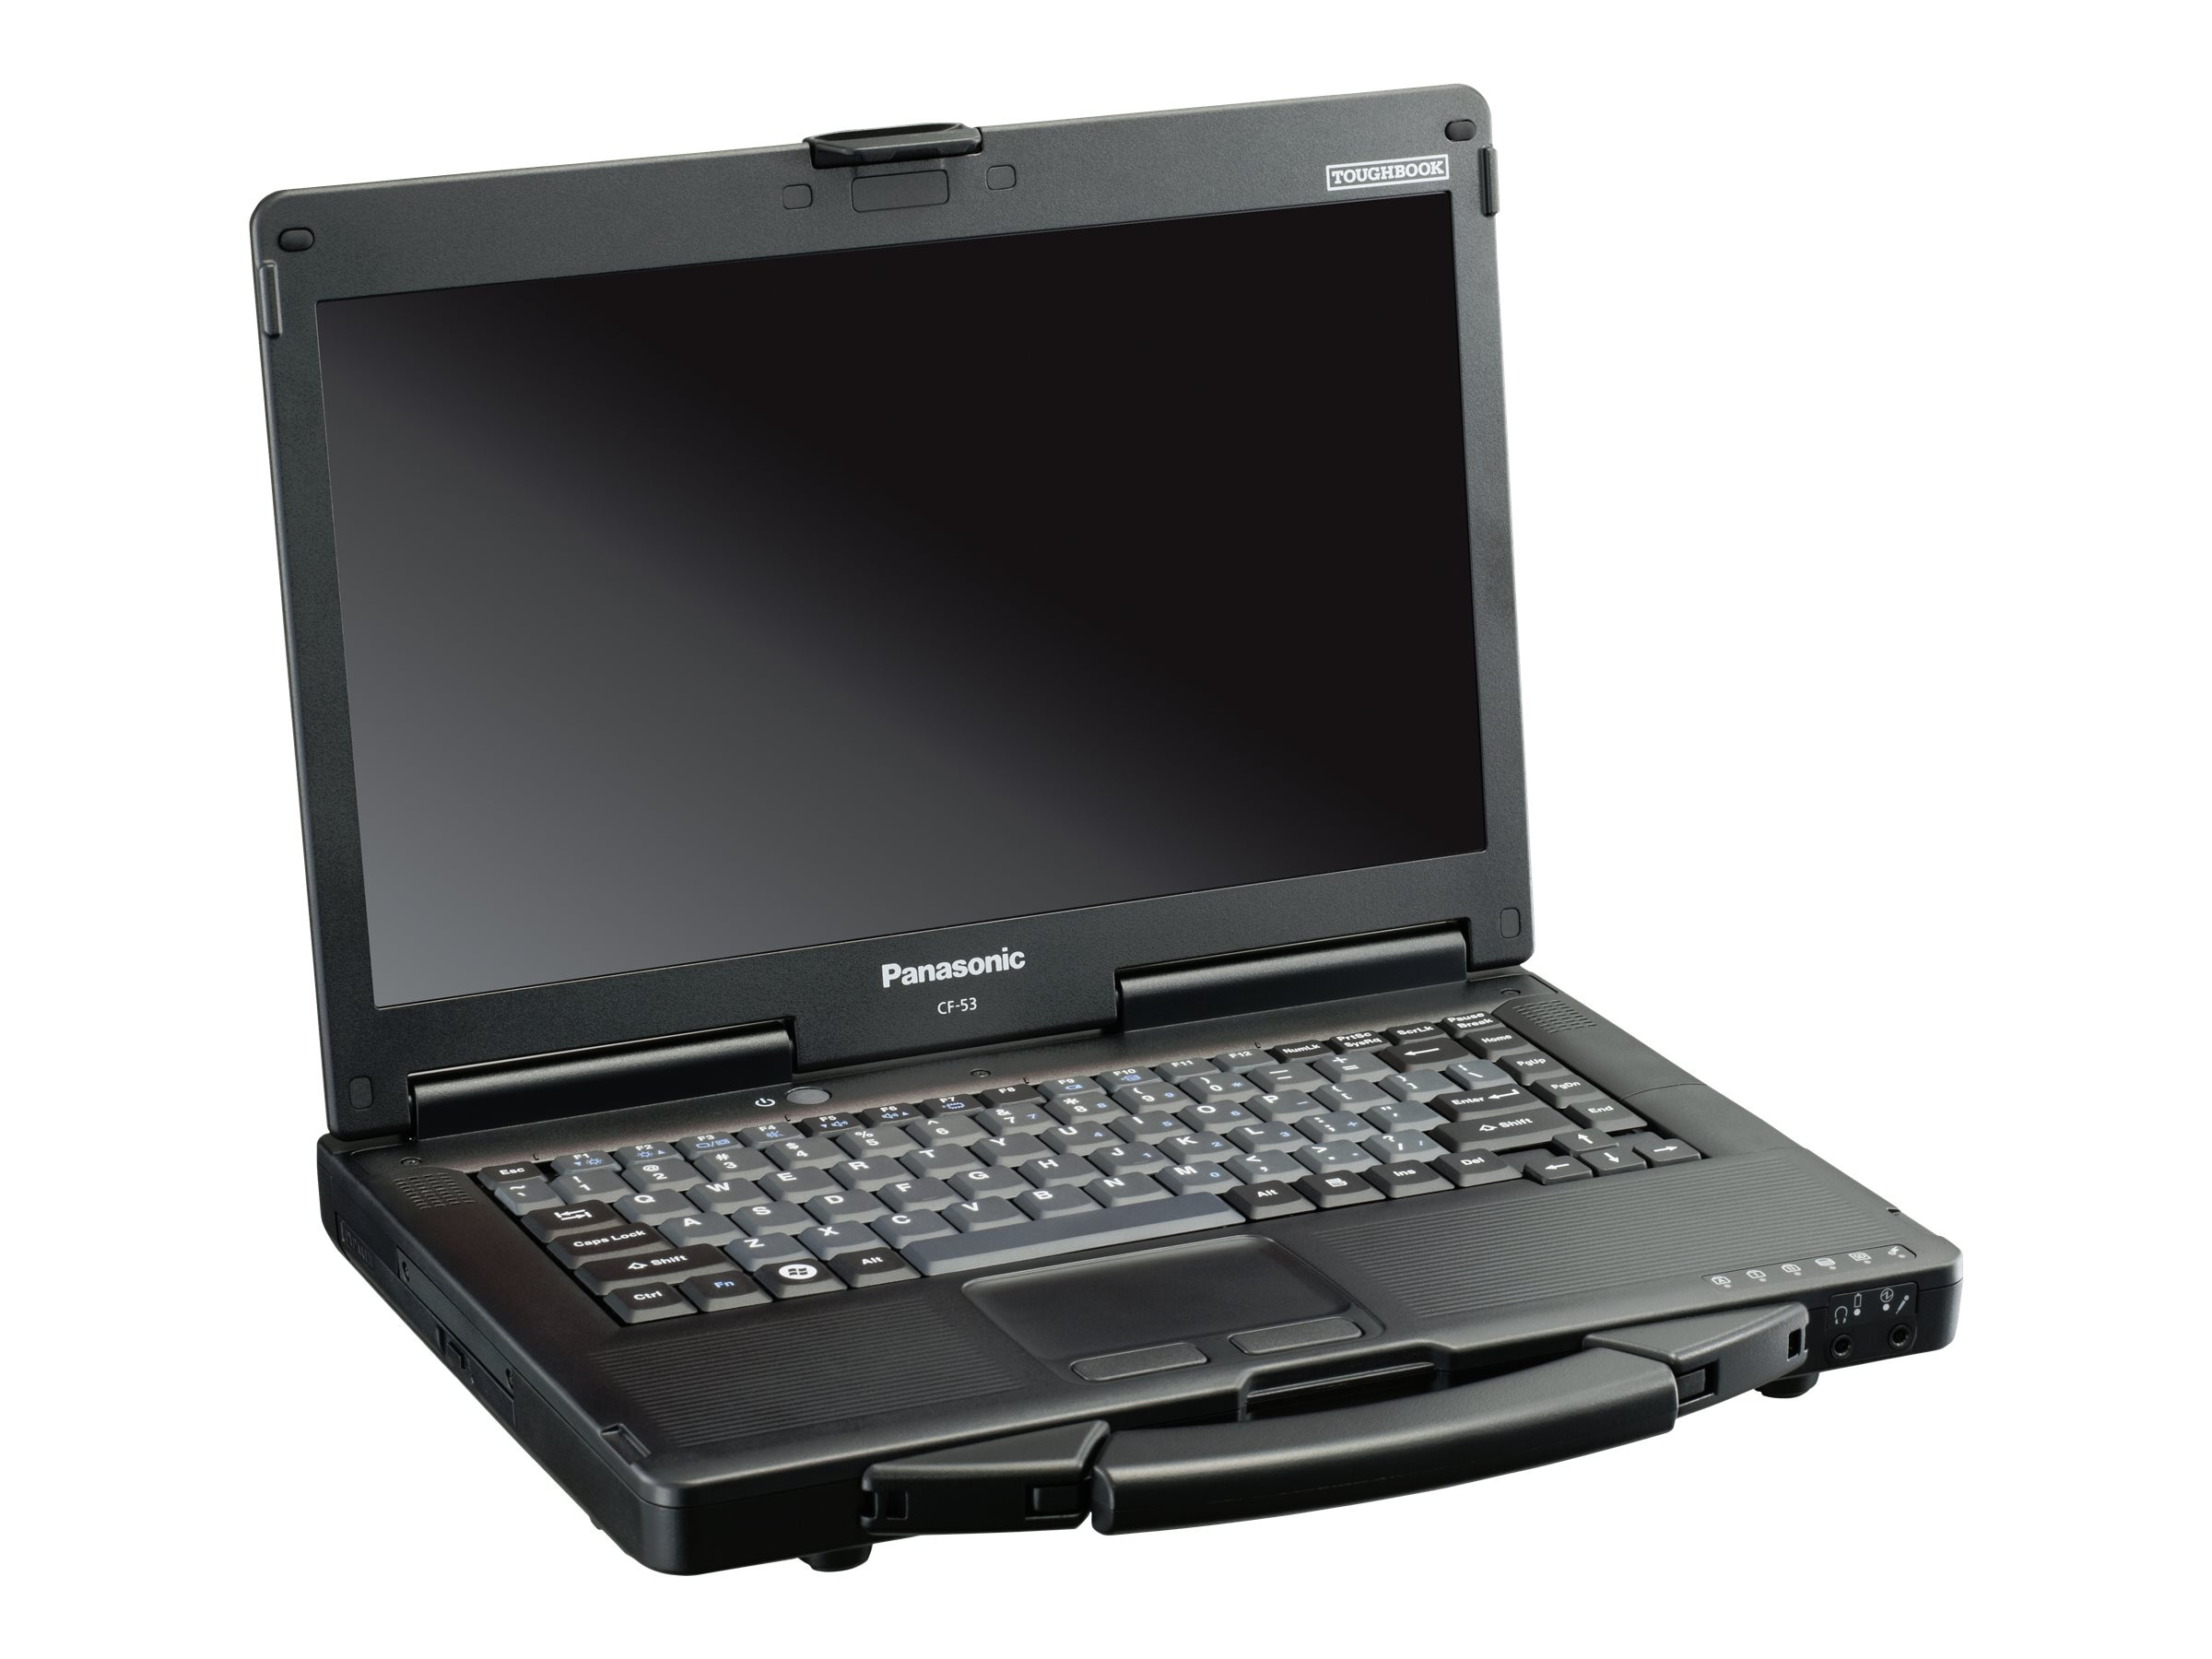 Panasonic Toughbook 53 2GHz Core i5 14in display, CF-532ALZYNM